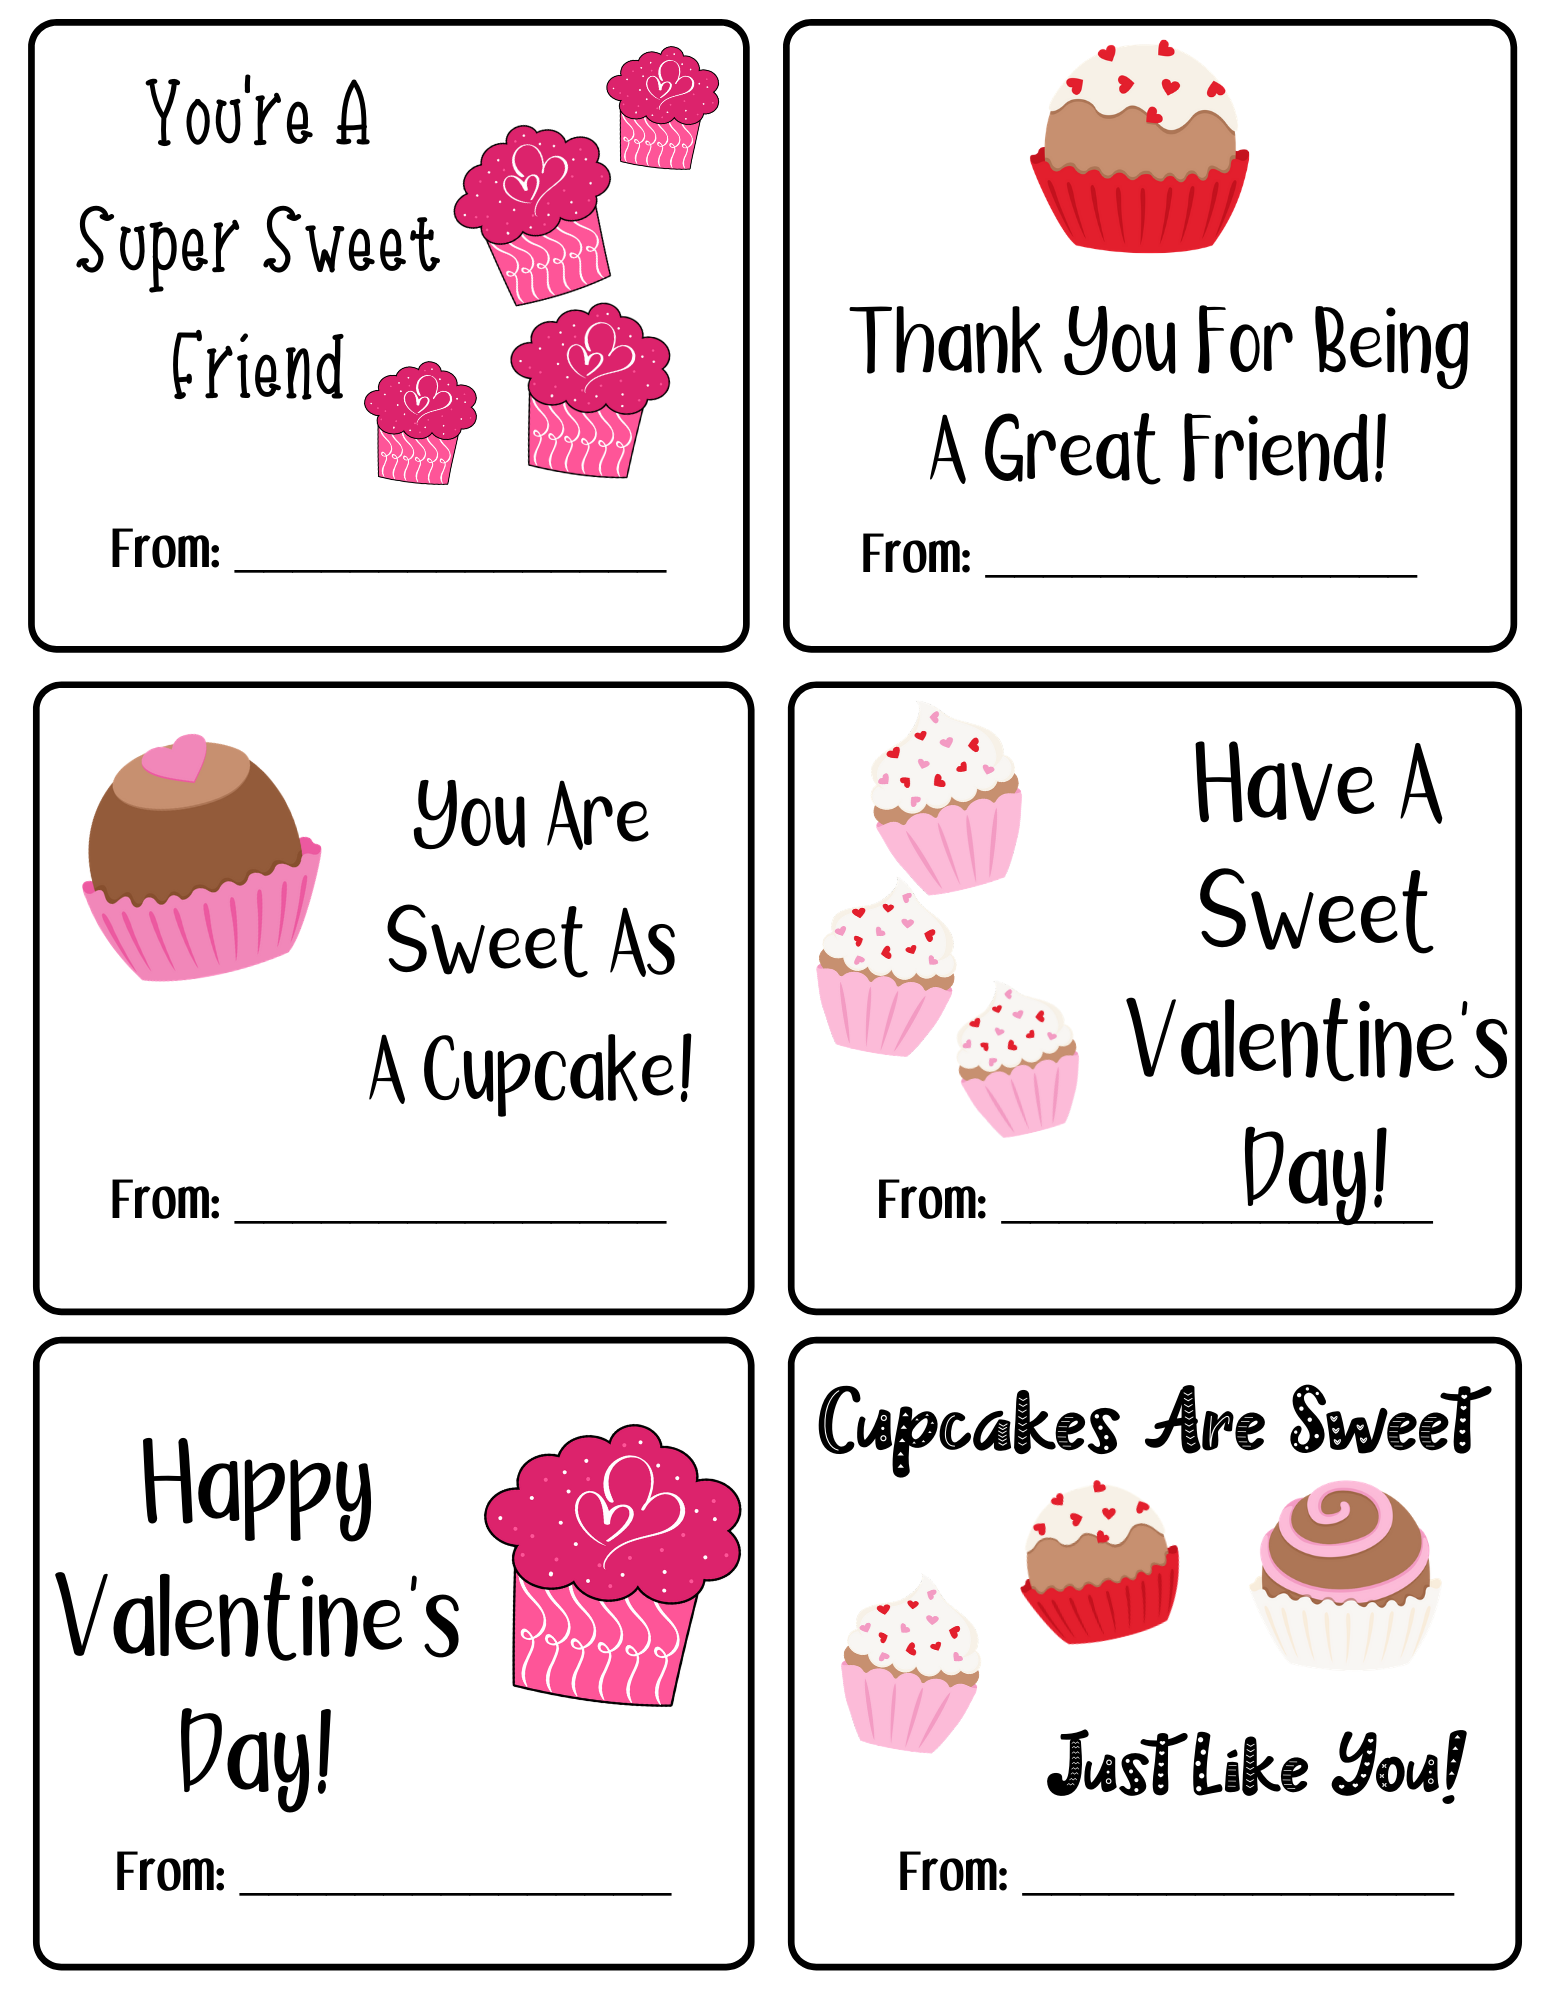 Cute Cupcake Valentine's Day Cards- Print them today! #sweet2020 #valentinesday #printables